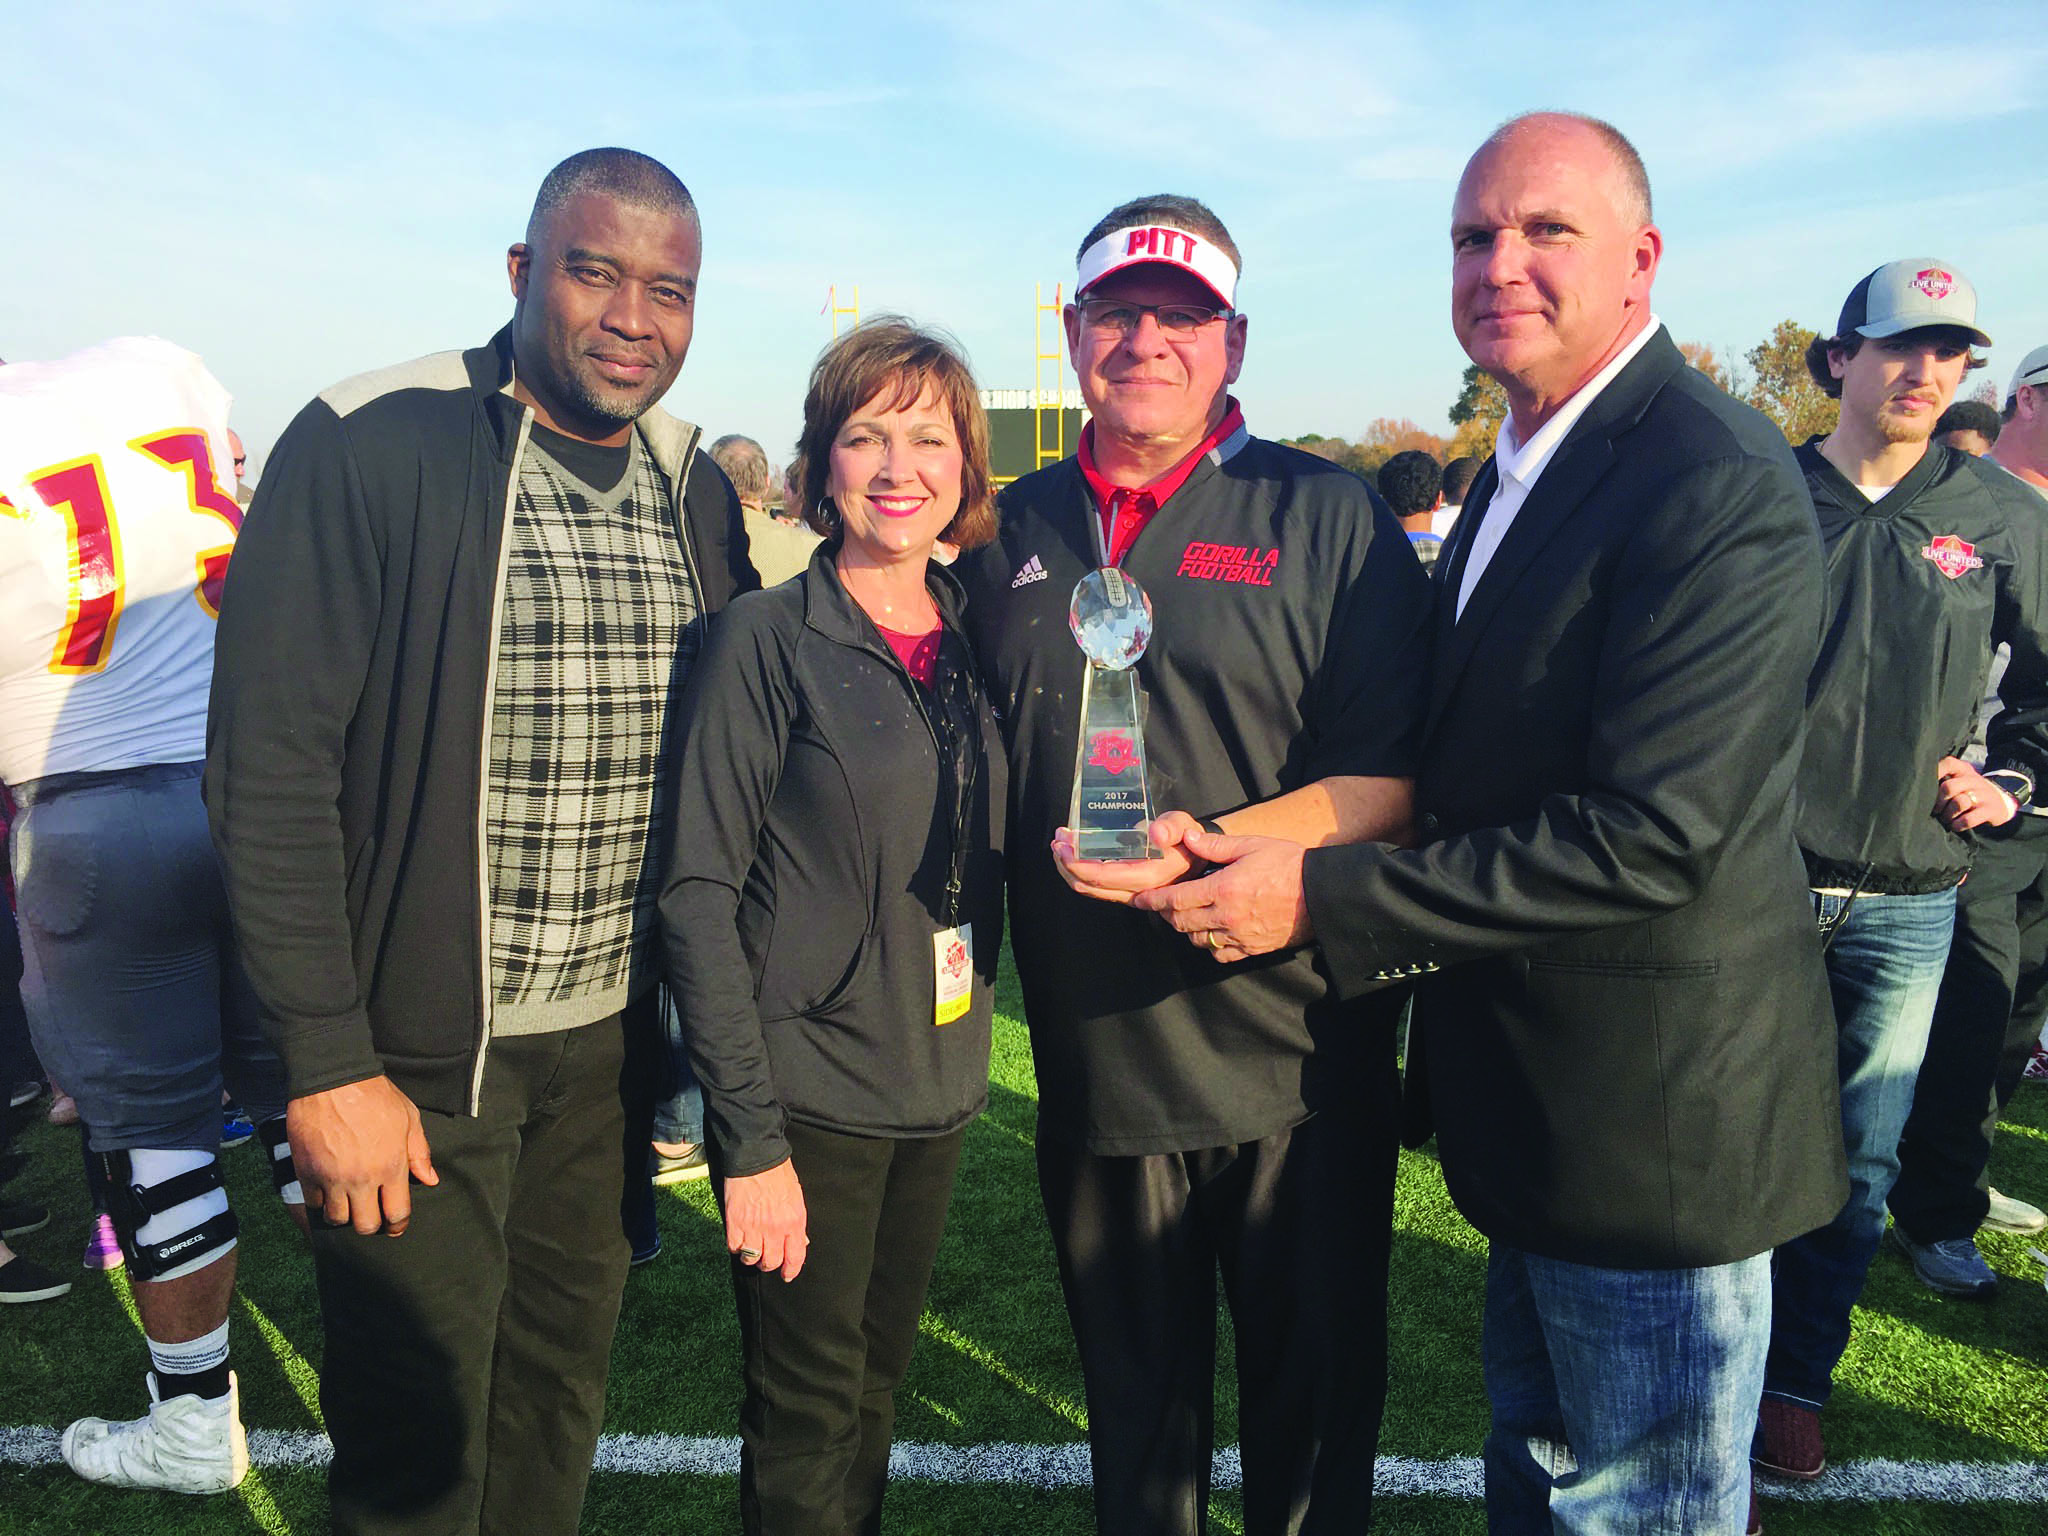 During the 2017 Live United Bowl, Shelby and Allen visited with Former Denver Bronco Super Bowl Wide Receiver Rod Smith and Pittsburg State Coach Tim Beck.